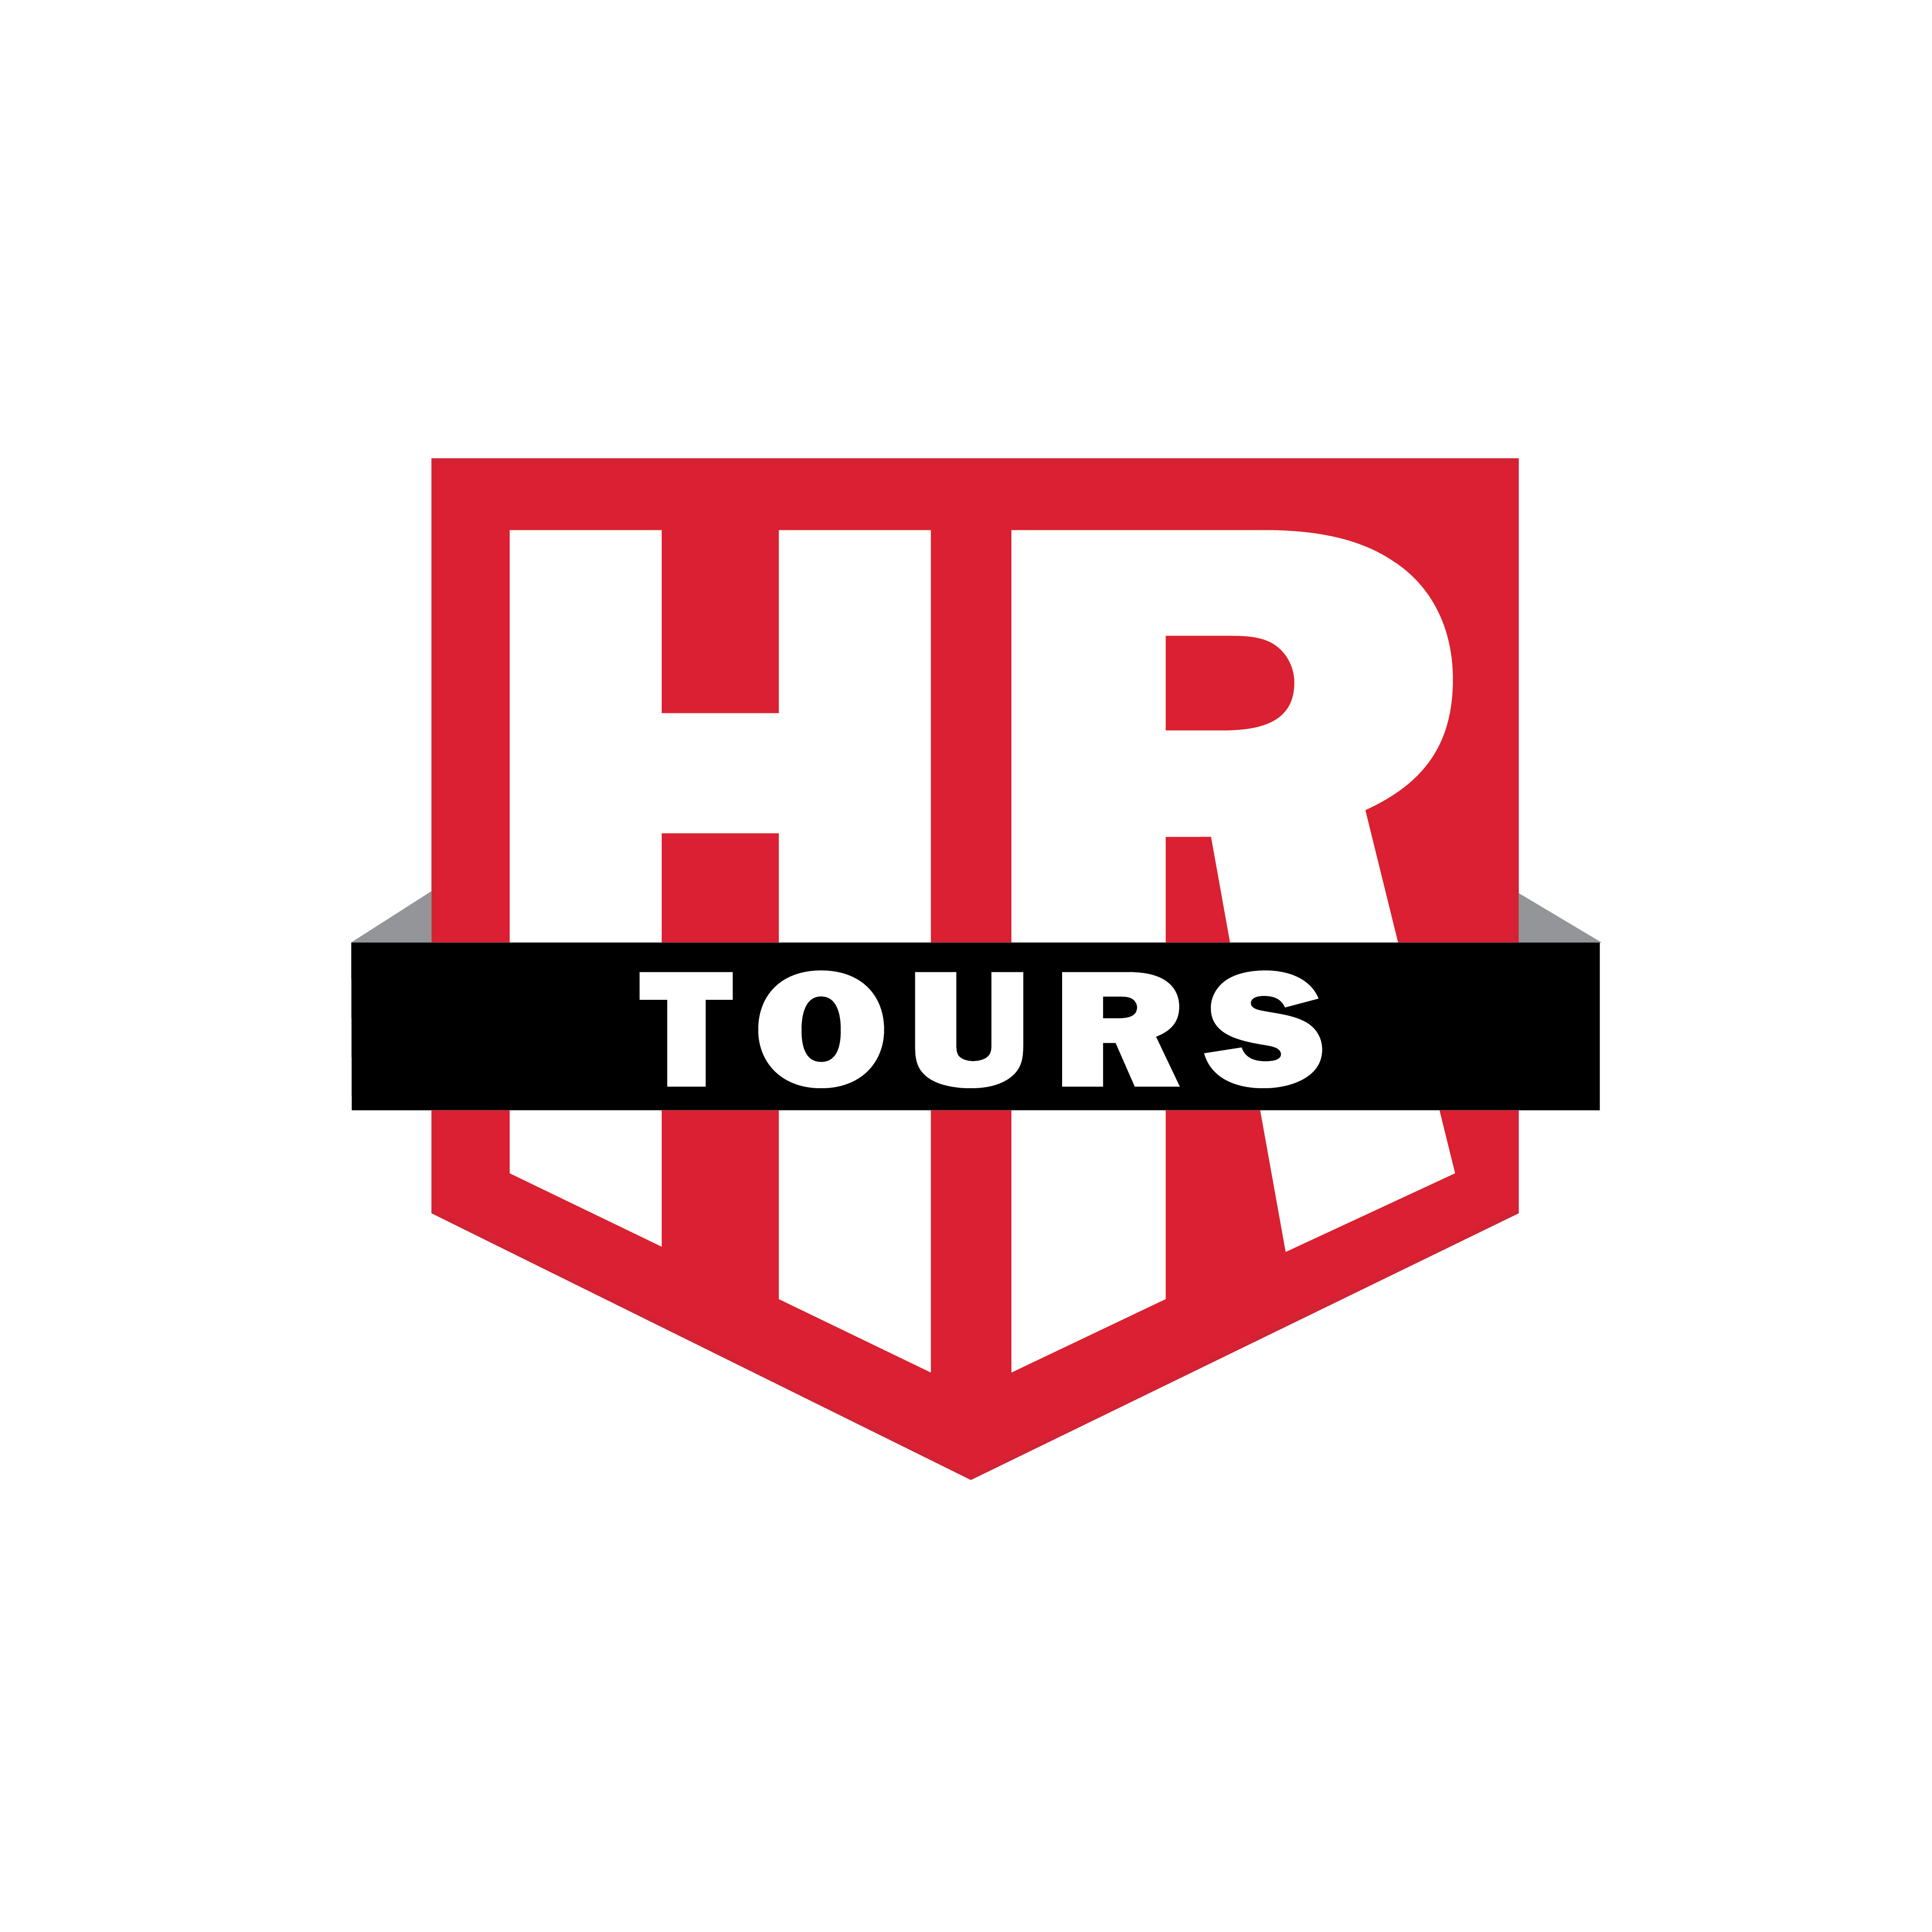 hr-tours-logo